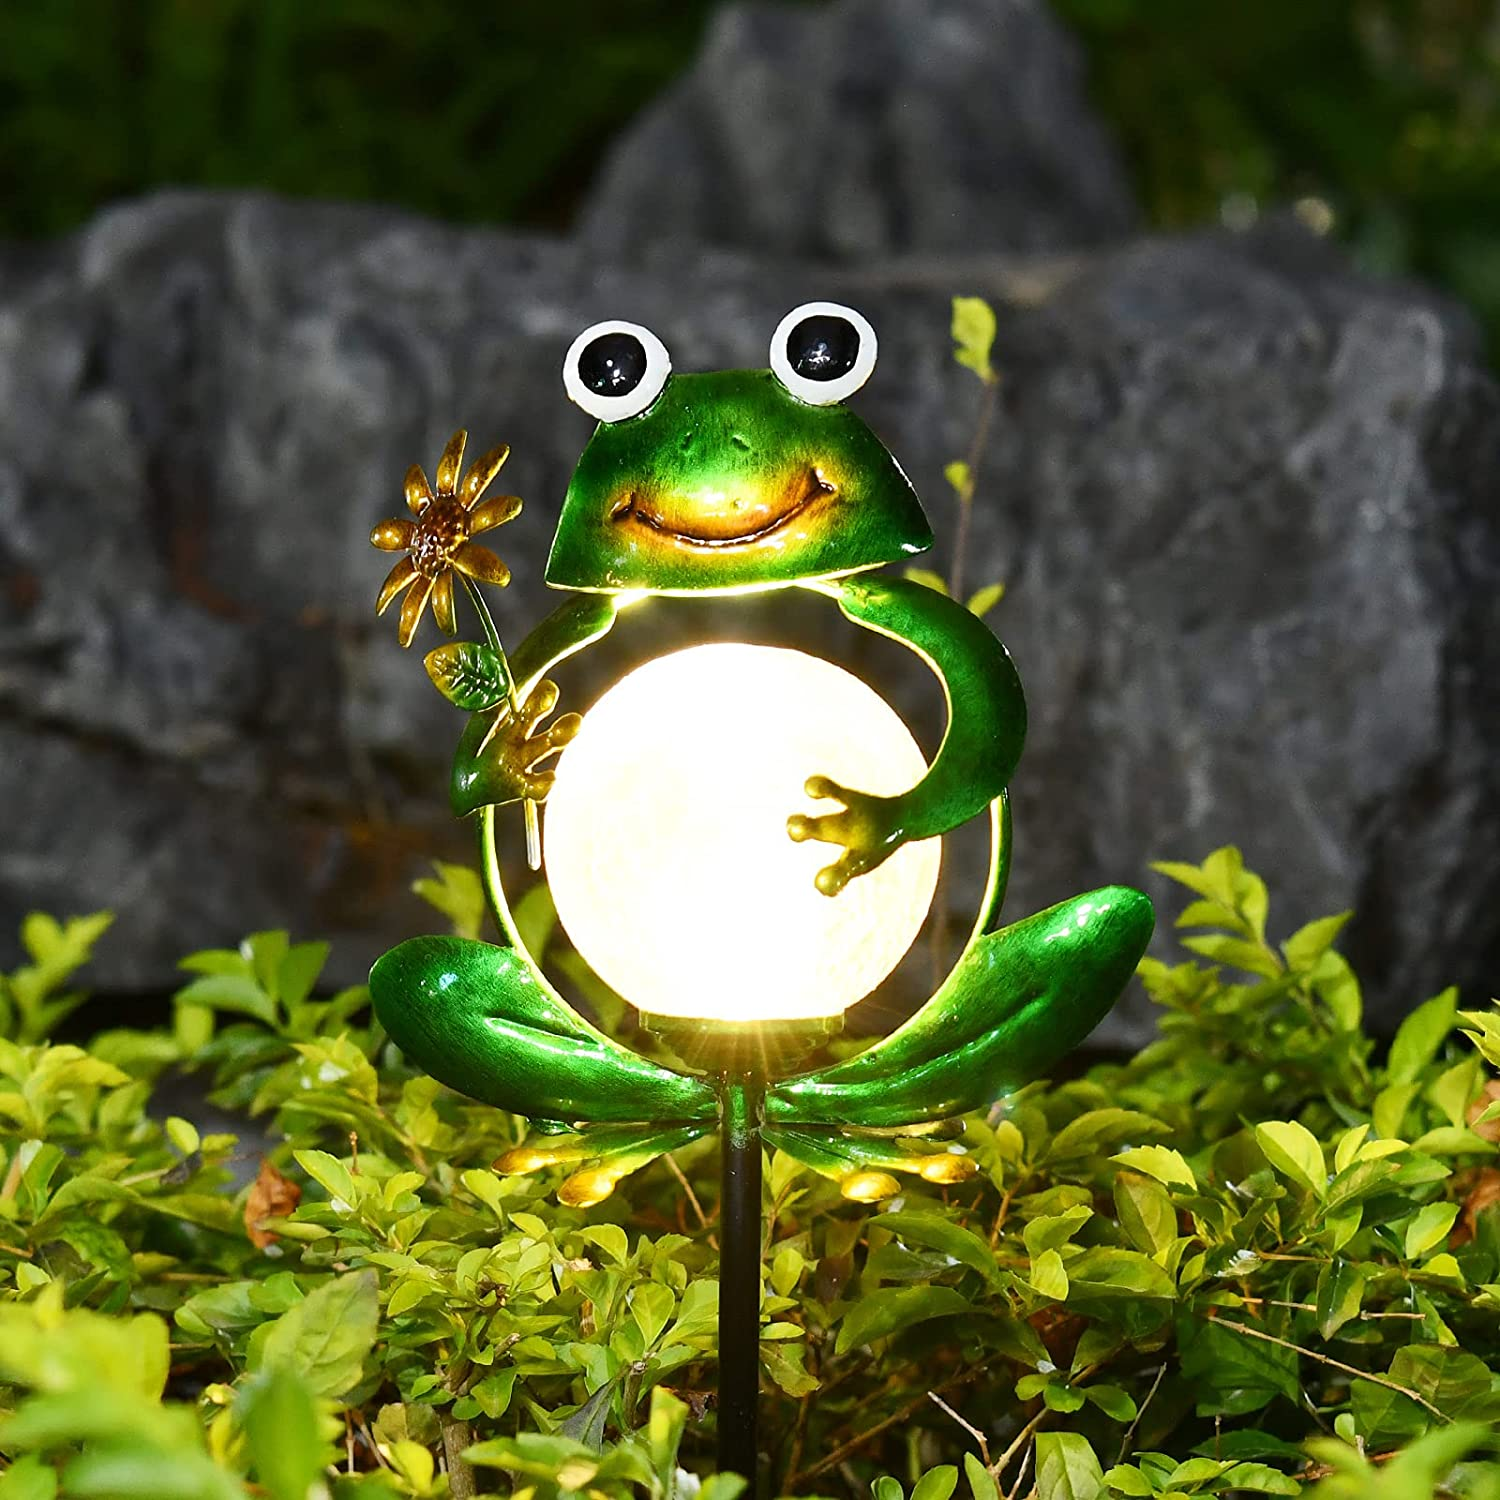 DUWIS 2021 New Decorative Solar Garden Outdoor Lights, Metal Frog Shape, Waterproof Stake Lights with 2 Feet, Auto ON/Off Solar Powered Light for Patio, Lawn, Backyard, Pathway